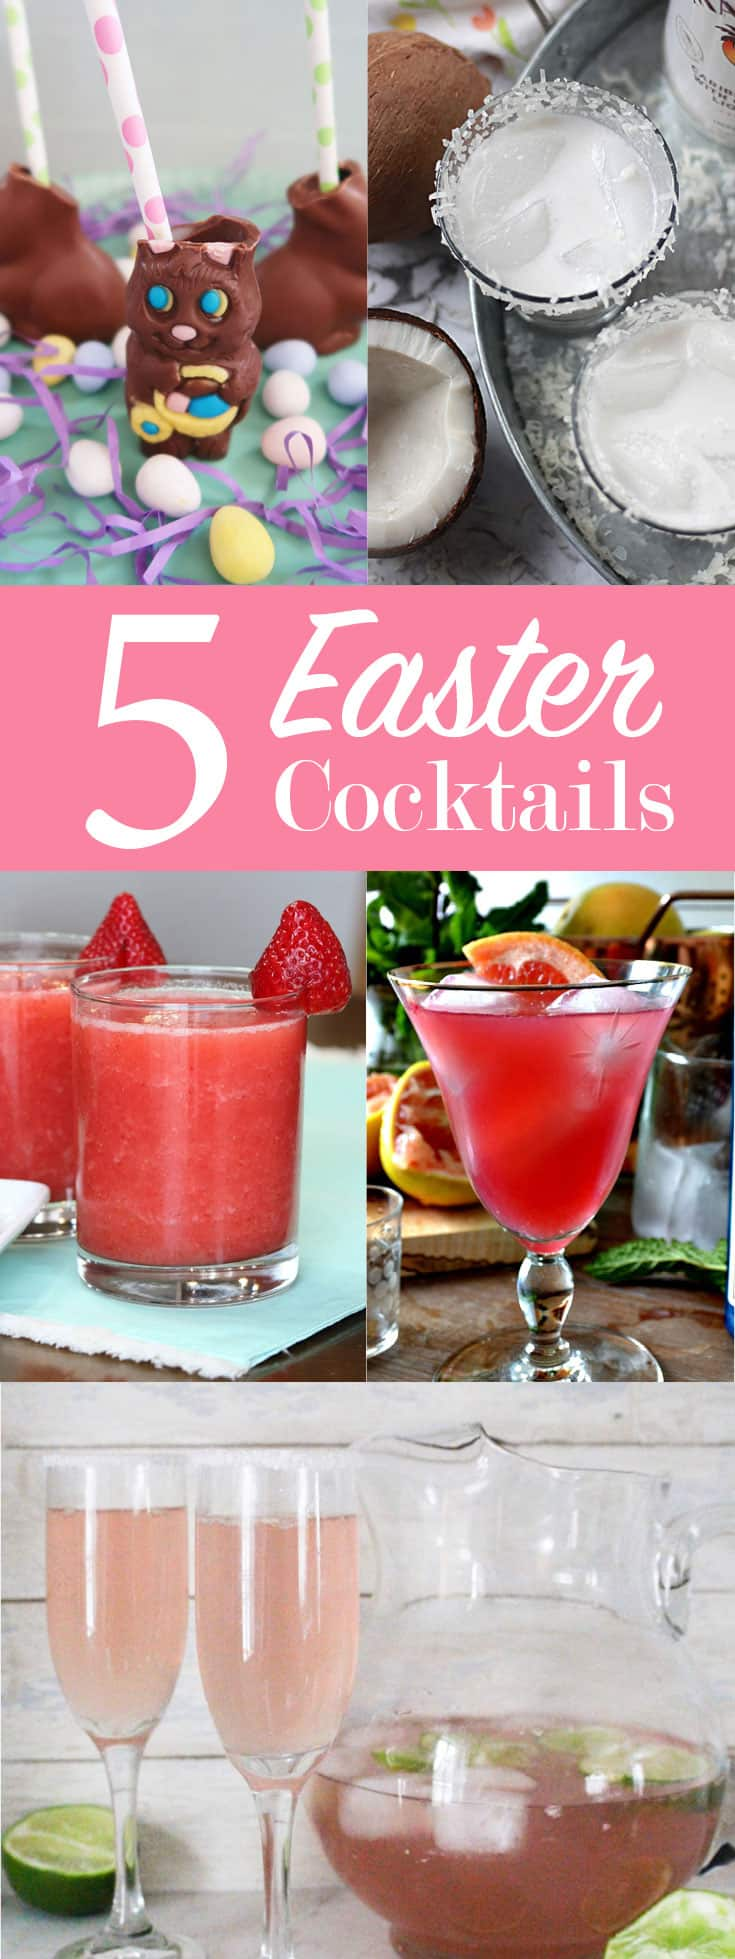 5 Easter Cocktails